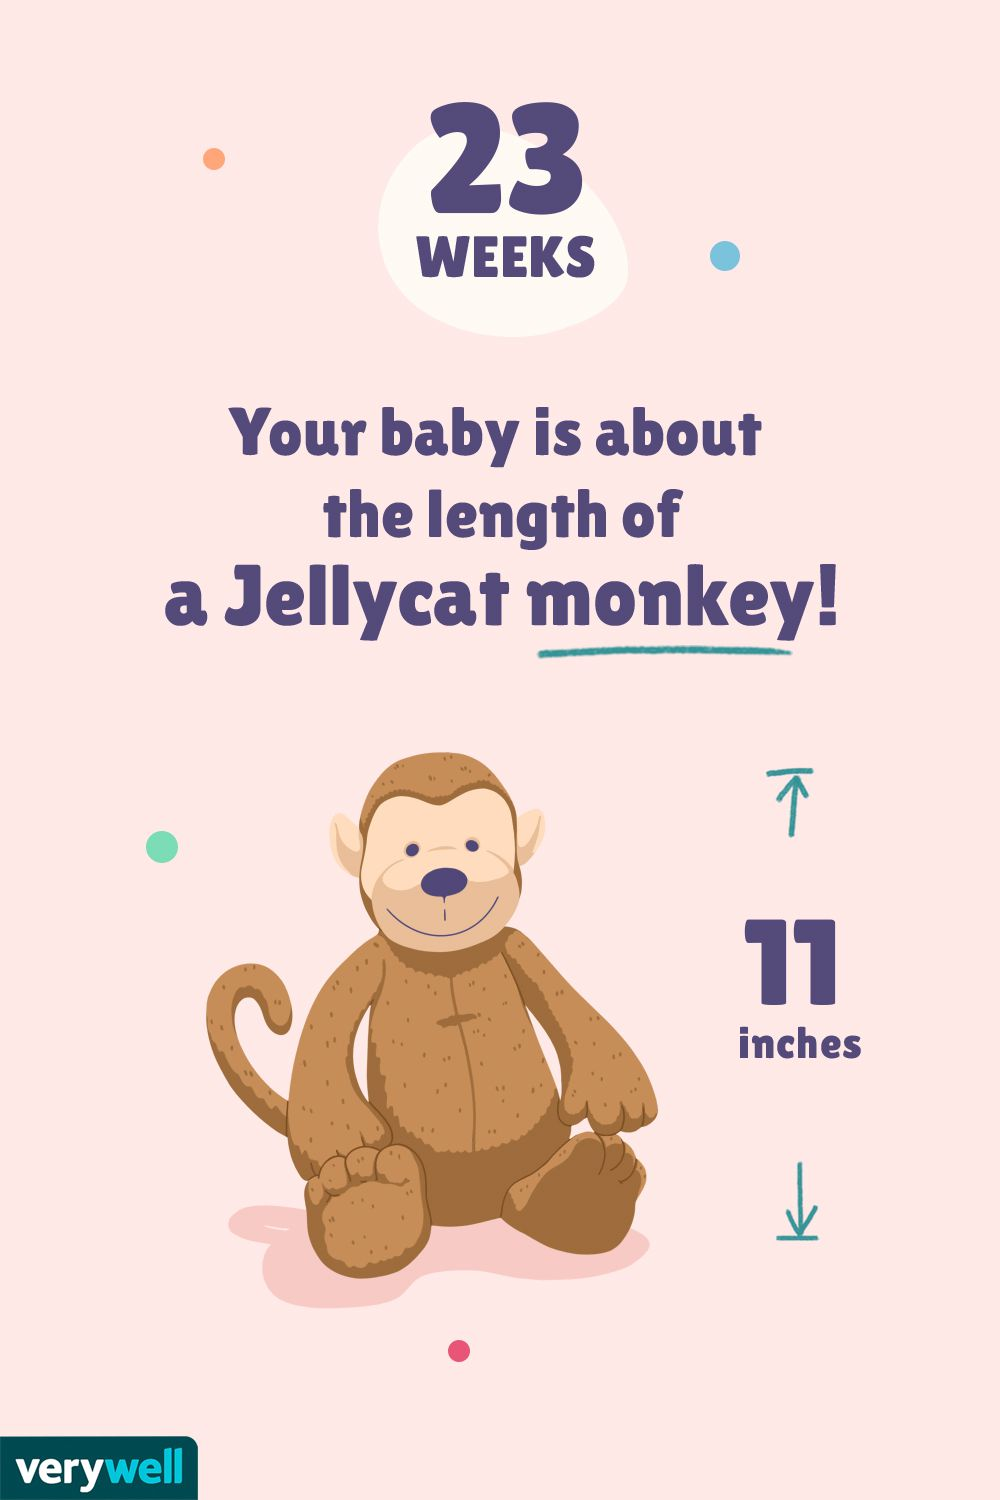 At 23 weeks pregnant, your baby is about the length of a Jellycat monkey!